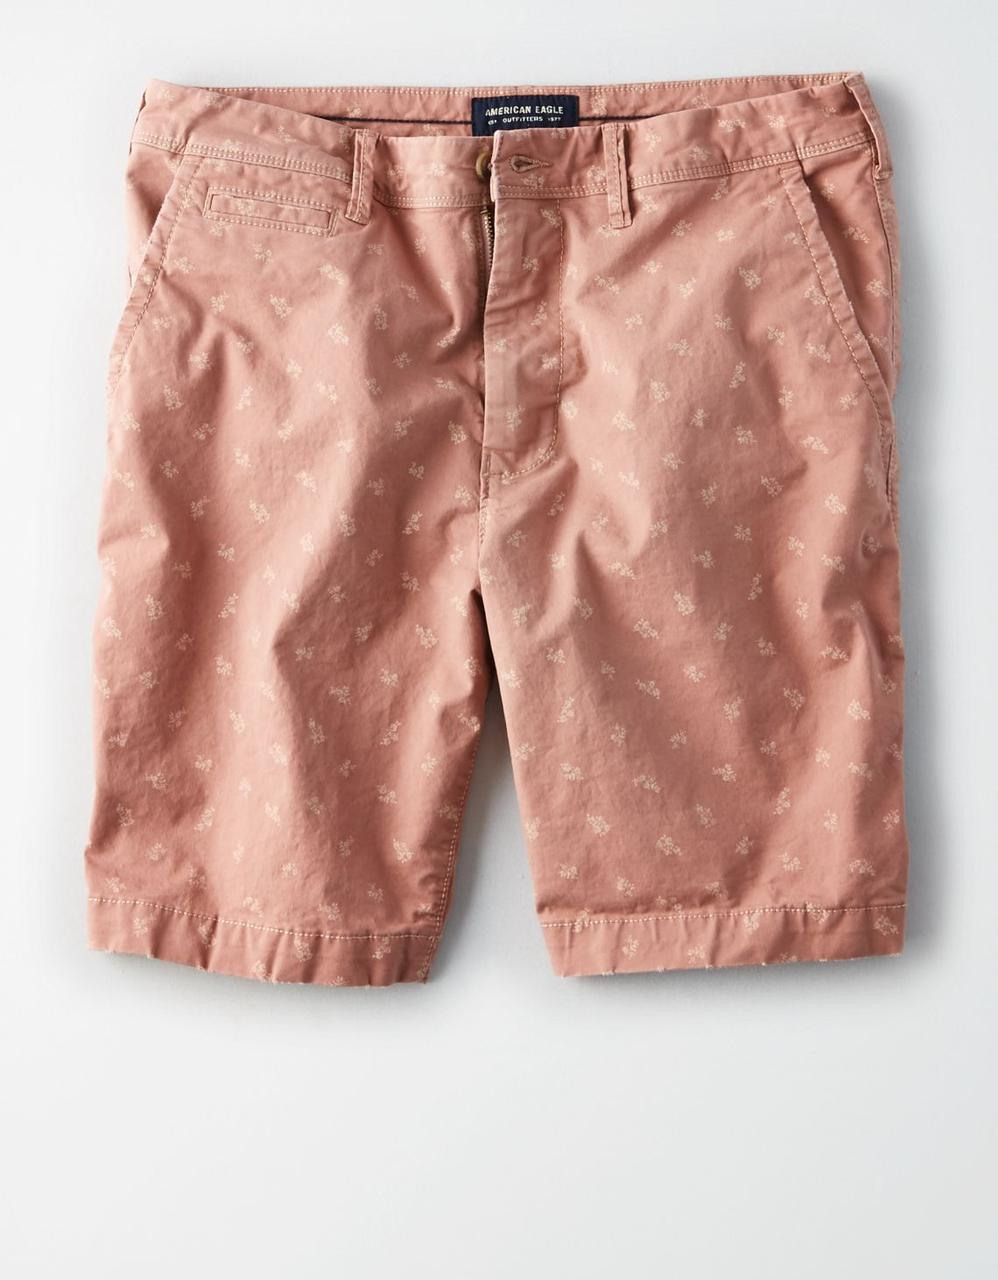 8b7943e07c American Eagle Shorts, AE Slim Flat Front Short for Men at Aeo.in